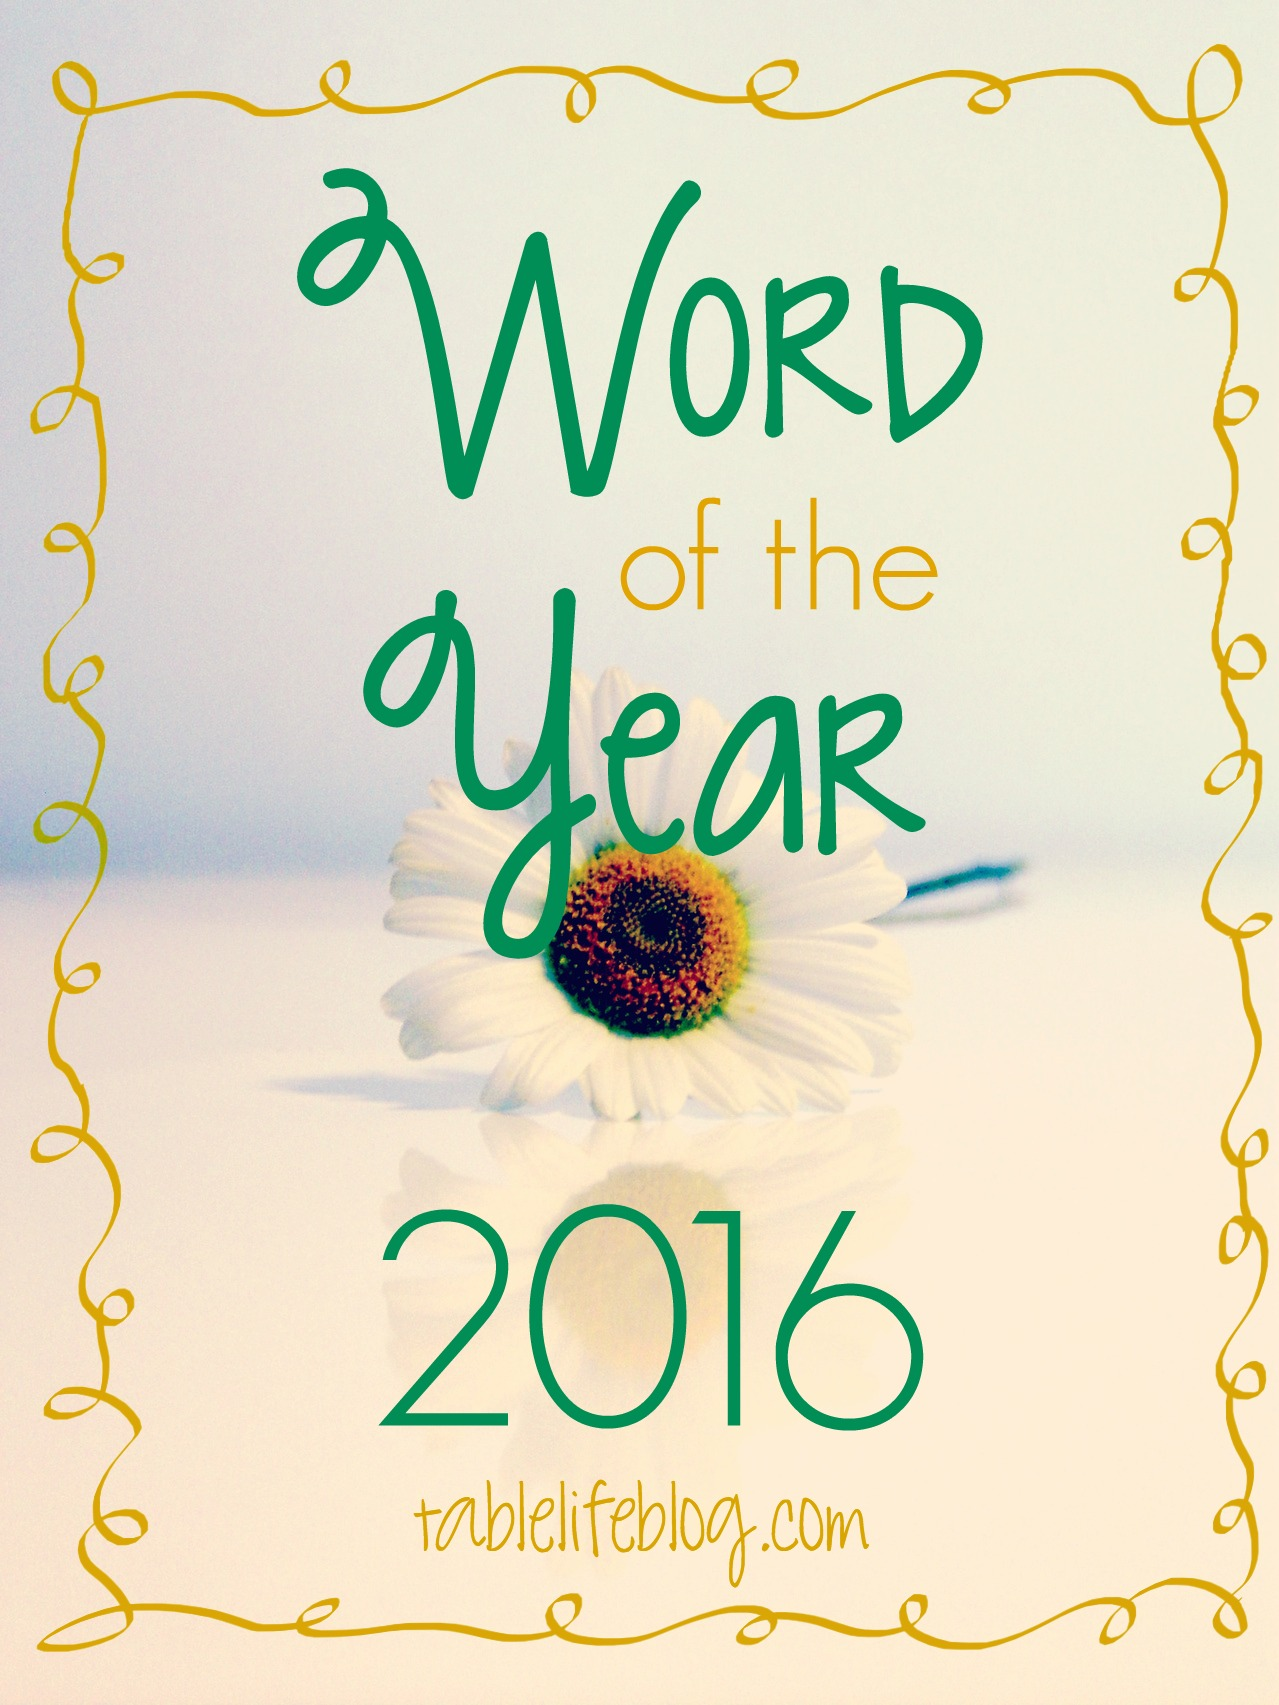 My 2016 Word of the Year